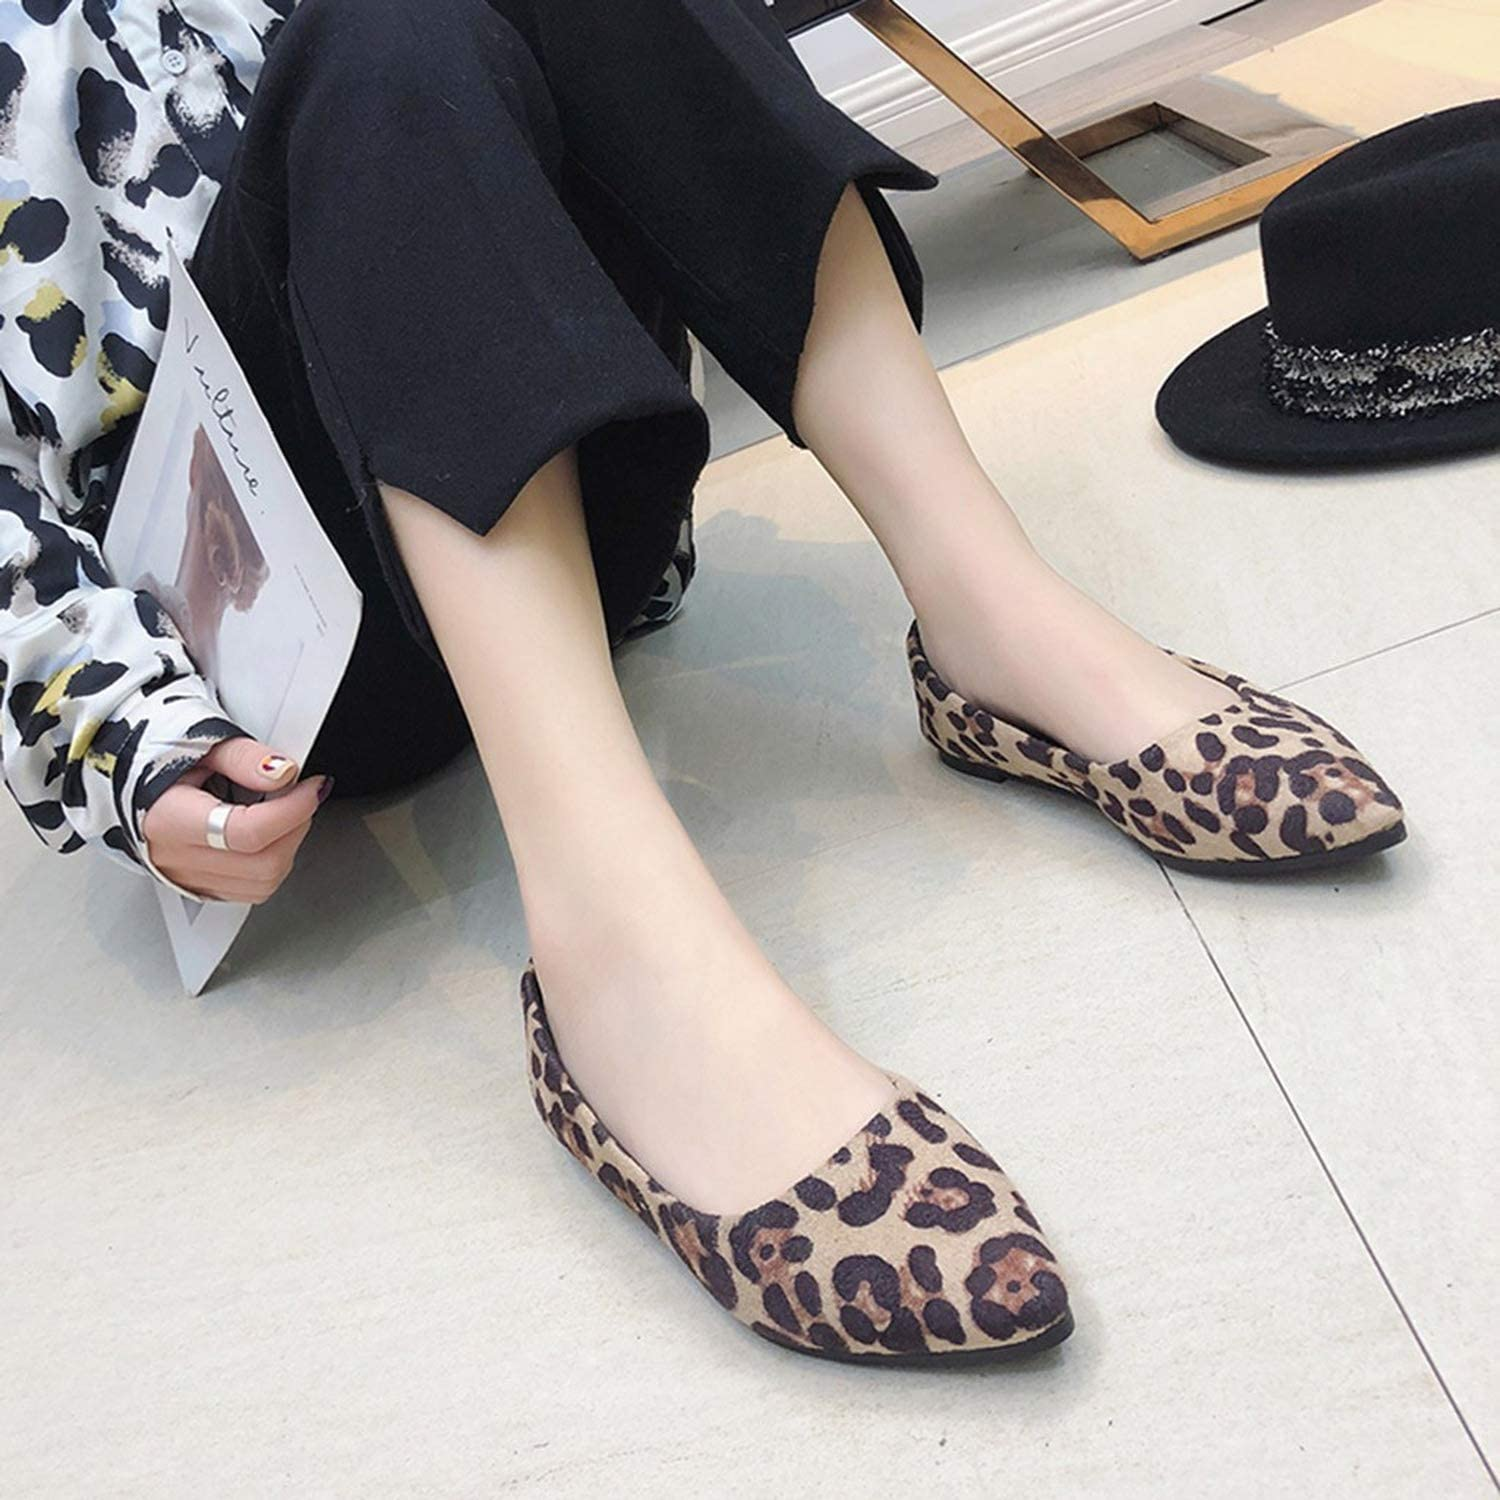 baixa Fashion Women Pointed Toe Single Shoes Casual Leopard Shallow Shoes Ladies Slip-On Flat with Shoes Ja17,KH,5,China